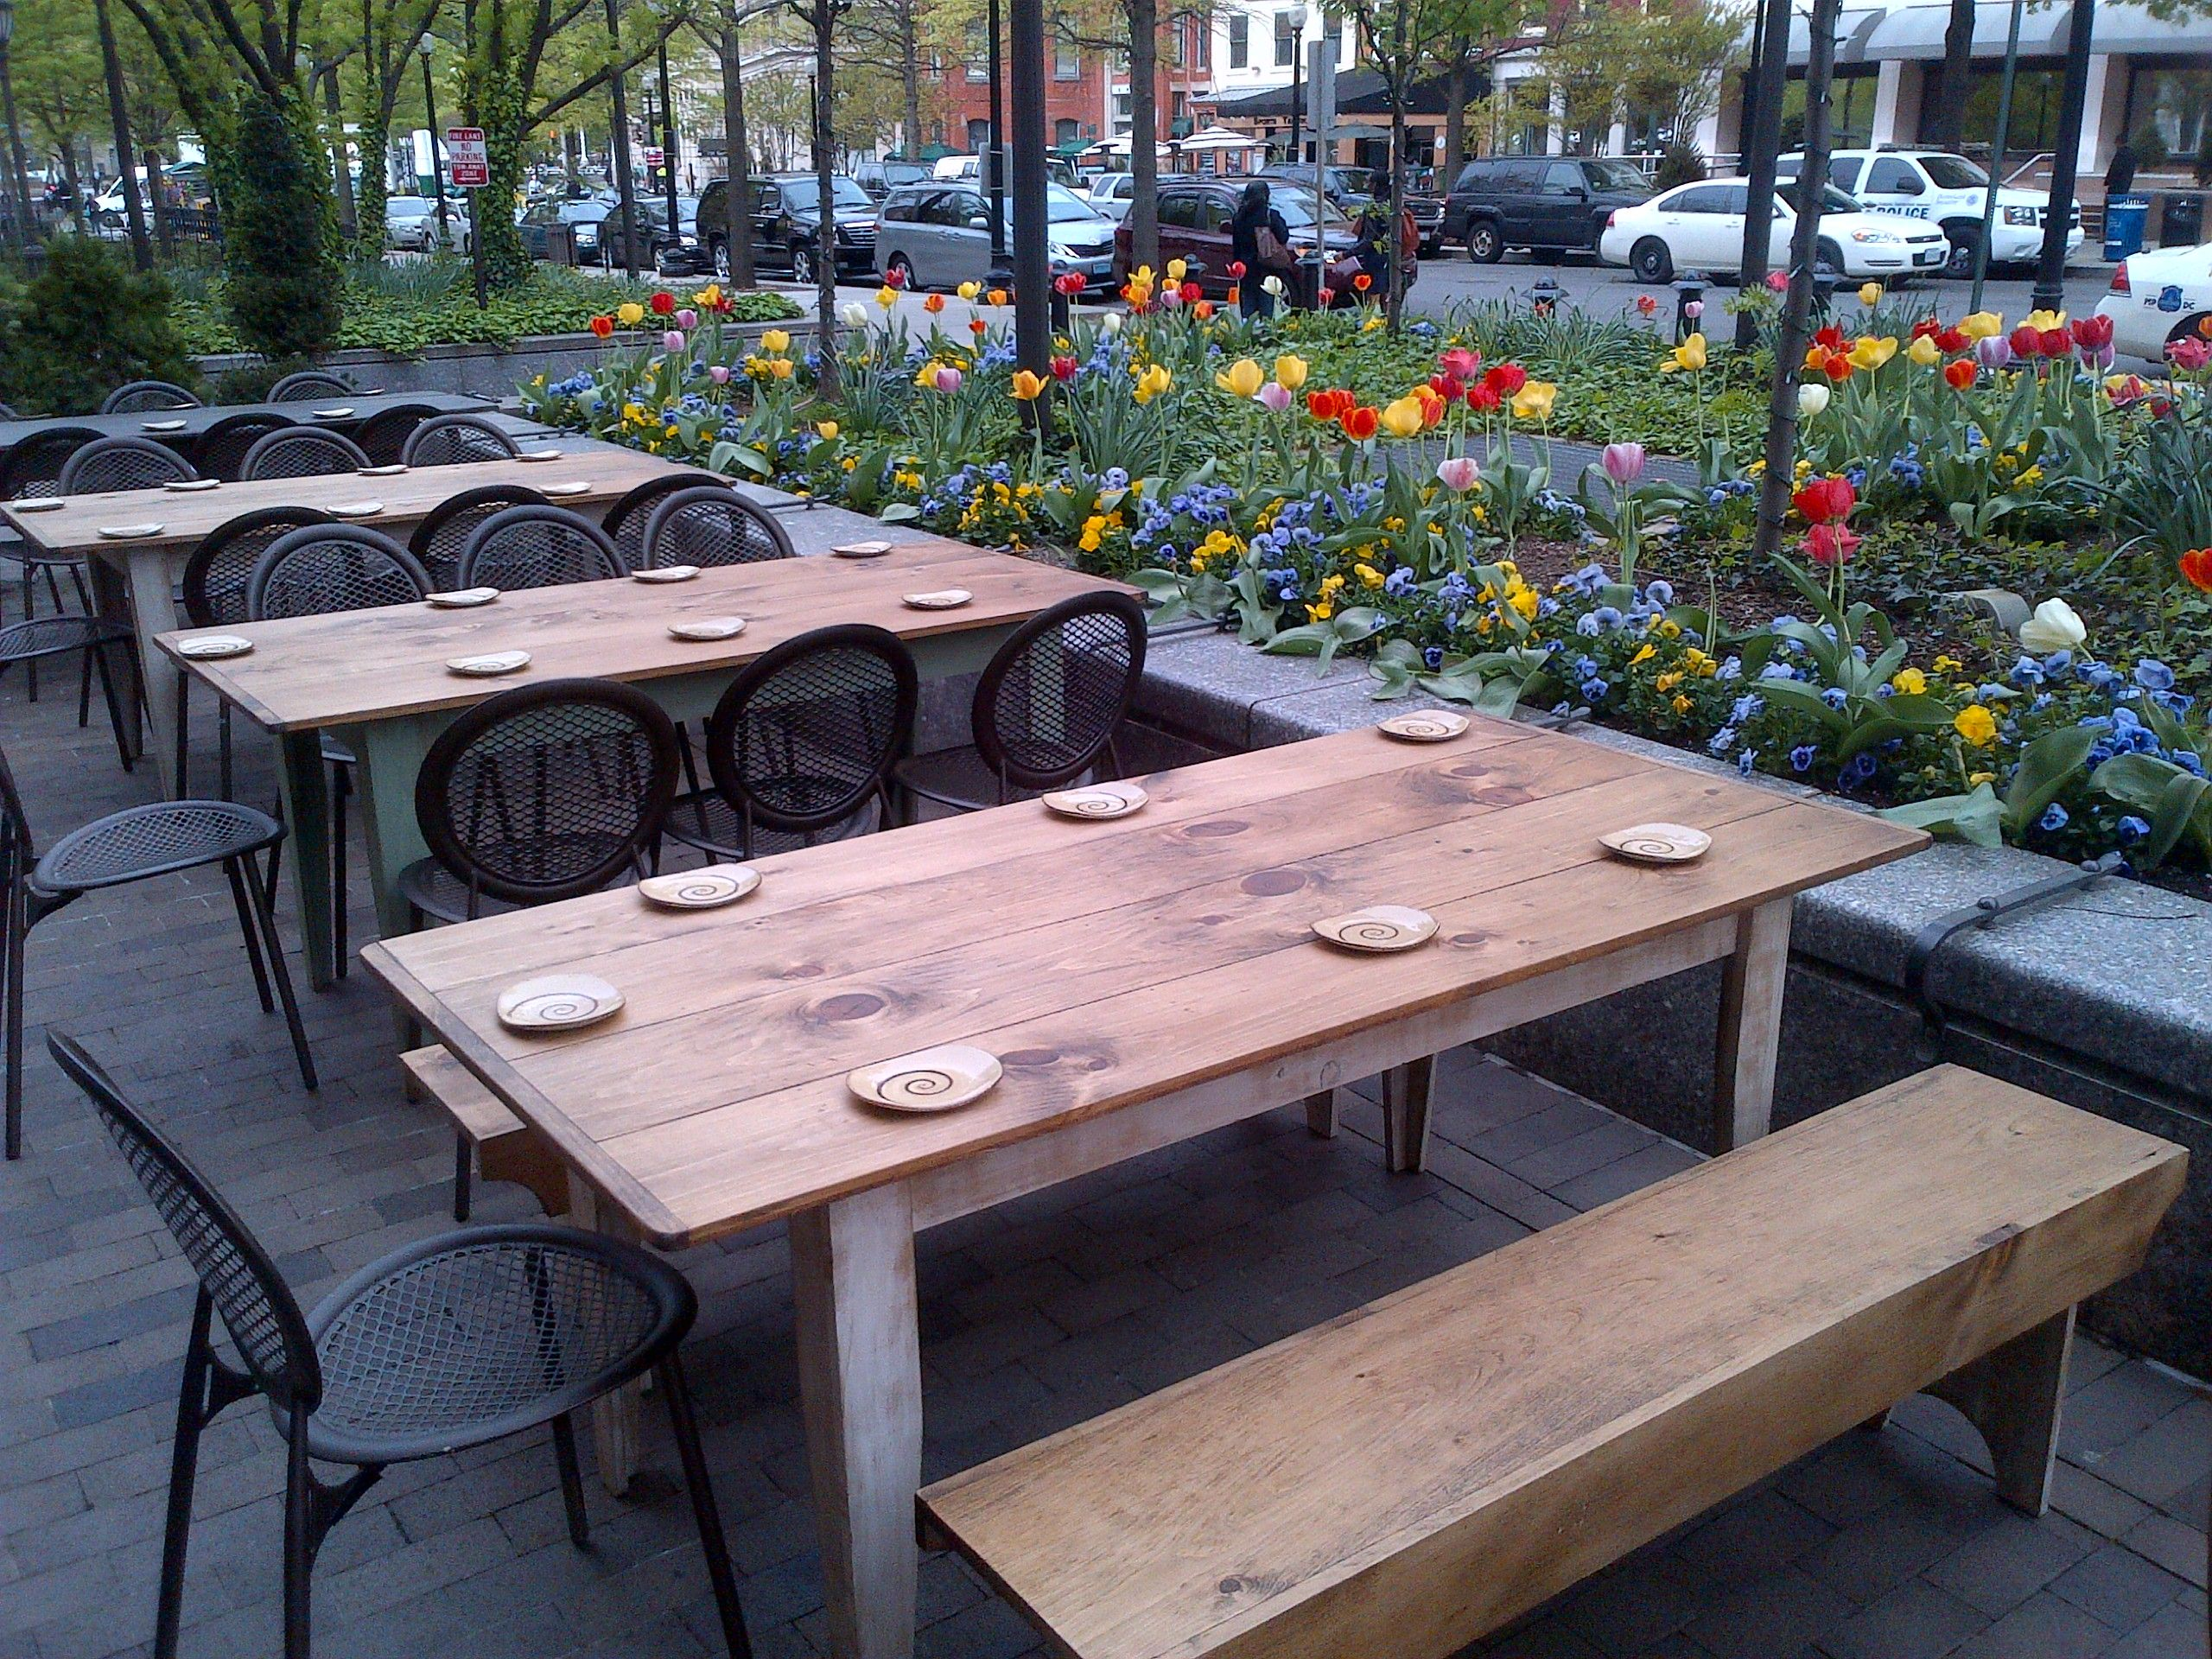 Restaurant Patio Chairs Nice Spring Flowers And Tulips Around An Outside Patio At